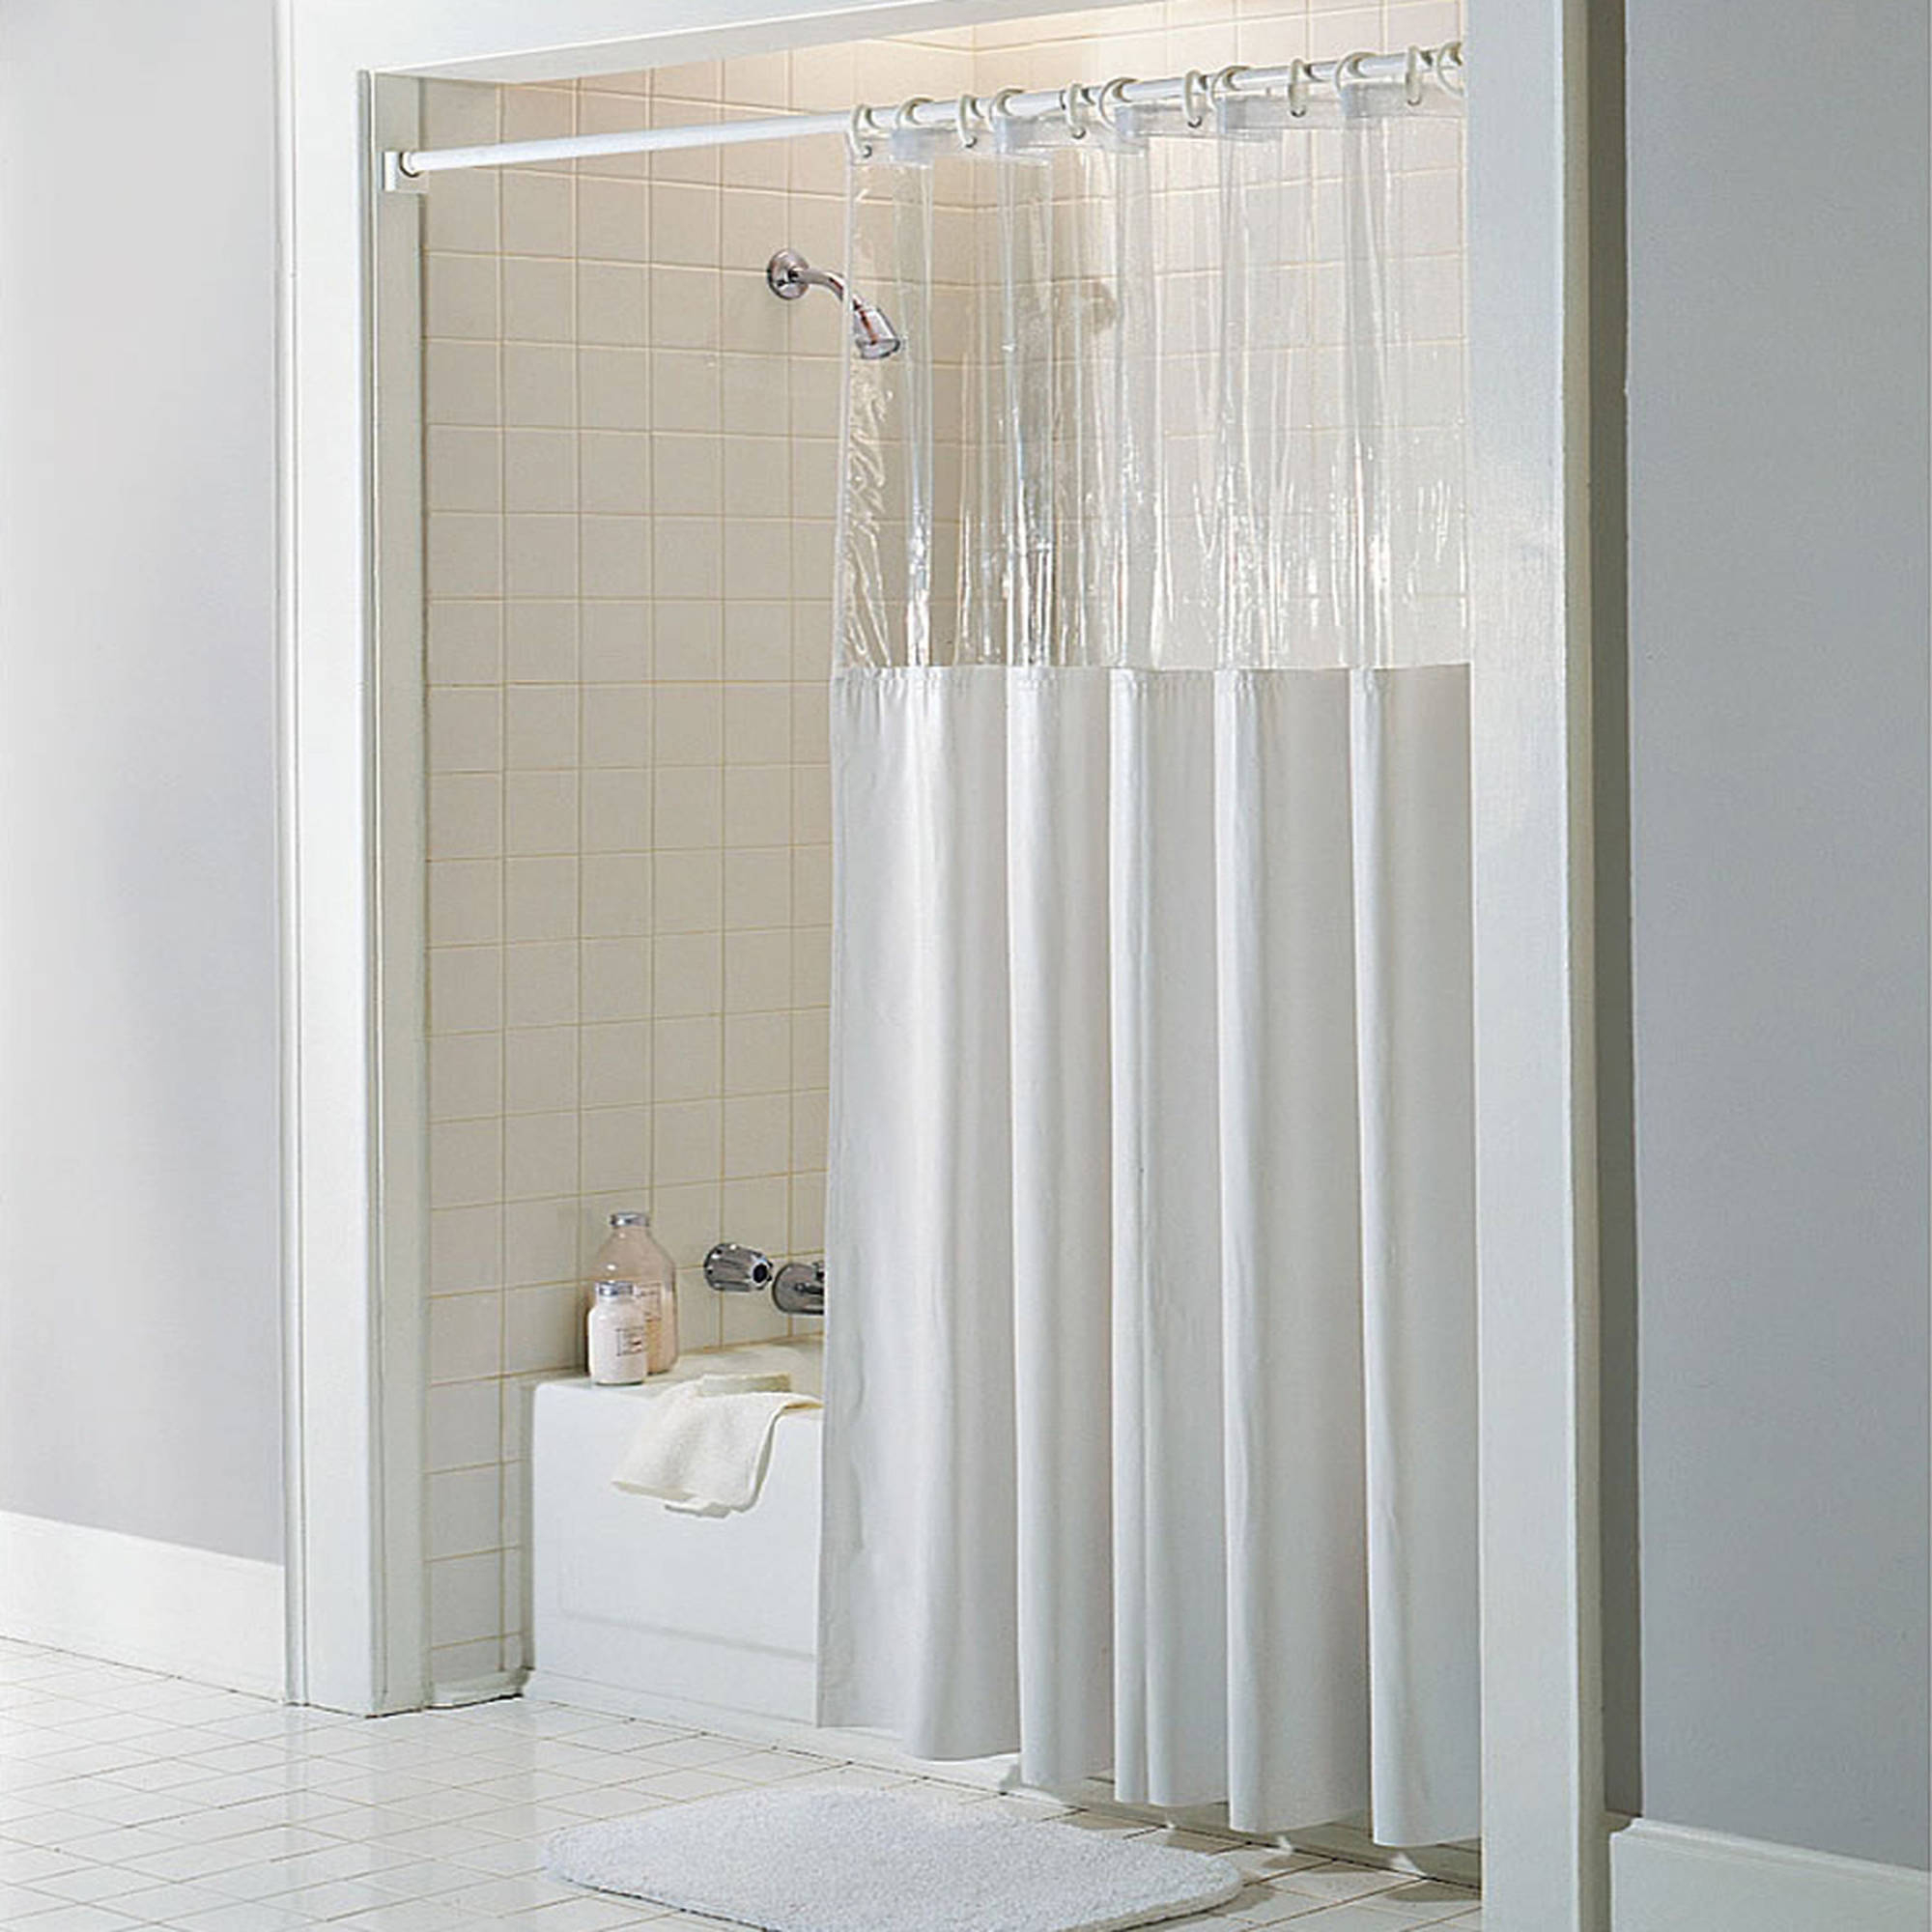 Shower Curtains With Clear Top Panel.Shower Curtain With Clear Top Panel Shower Curtains Ideas